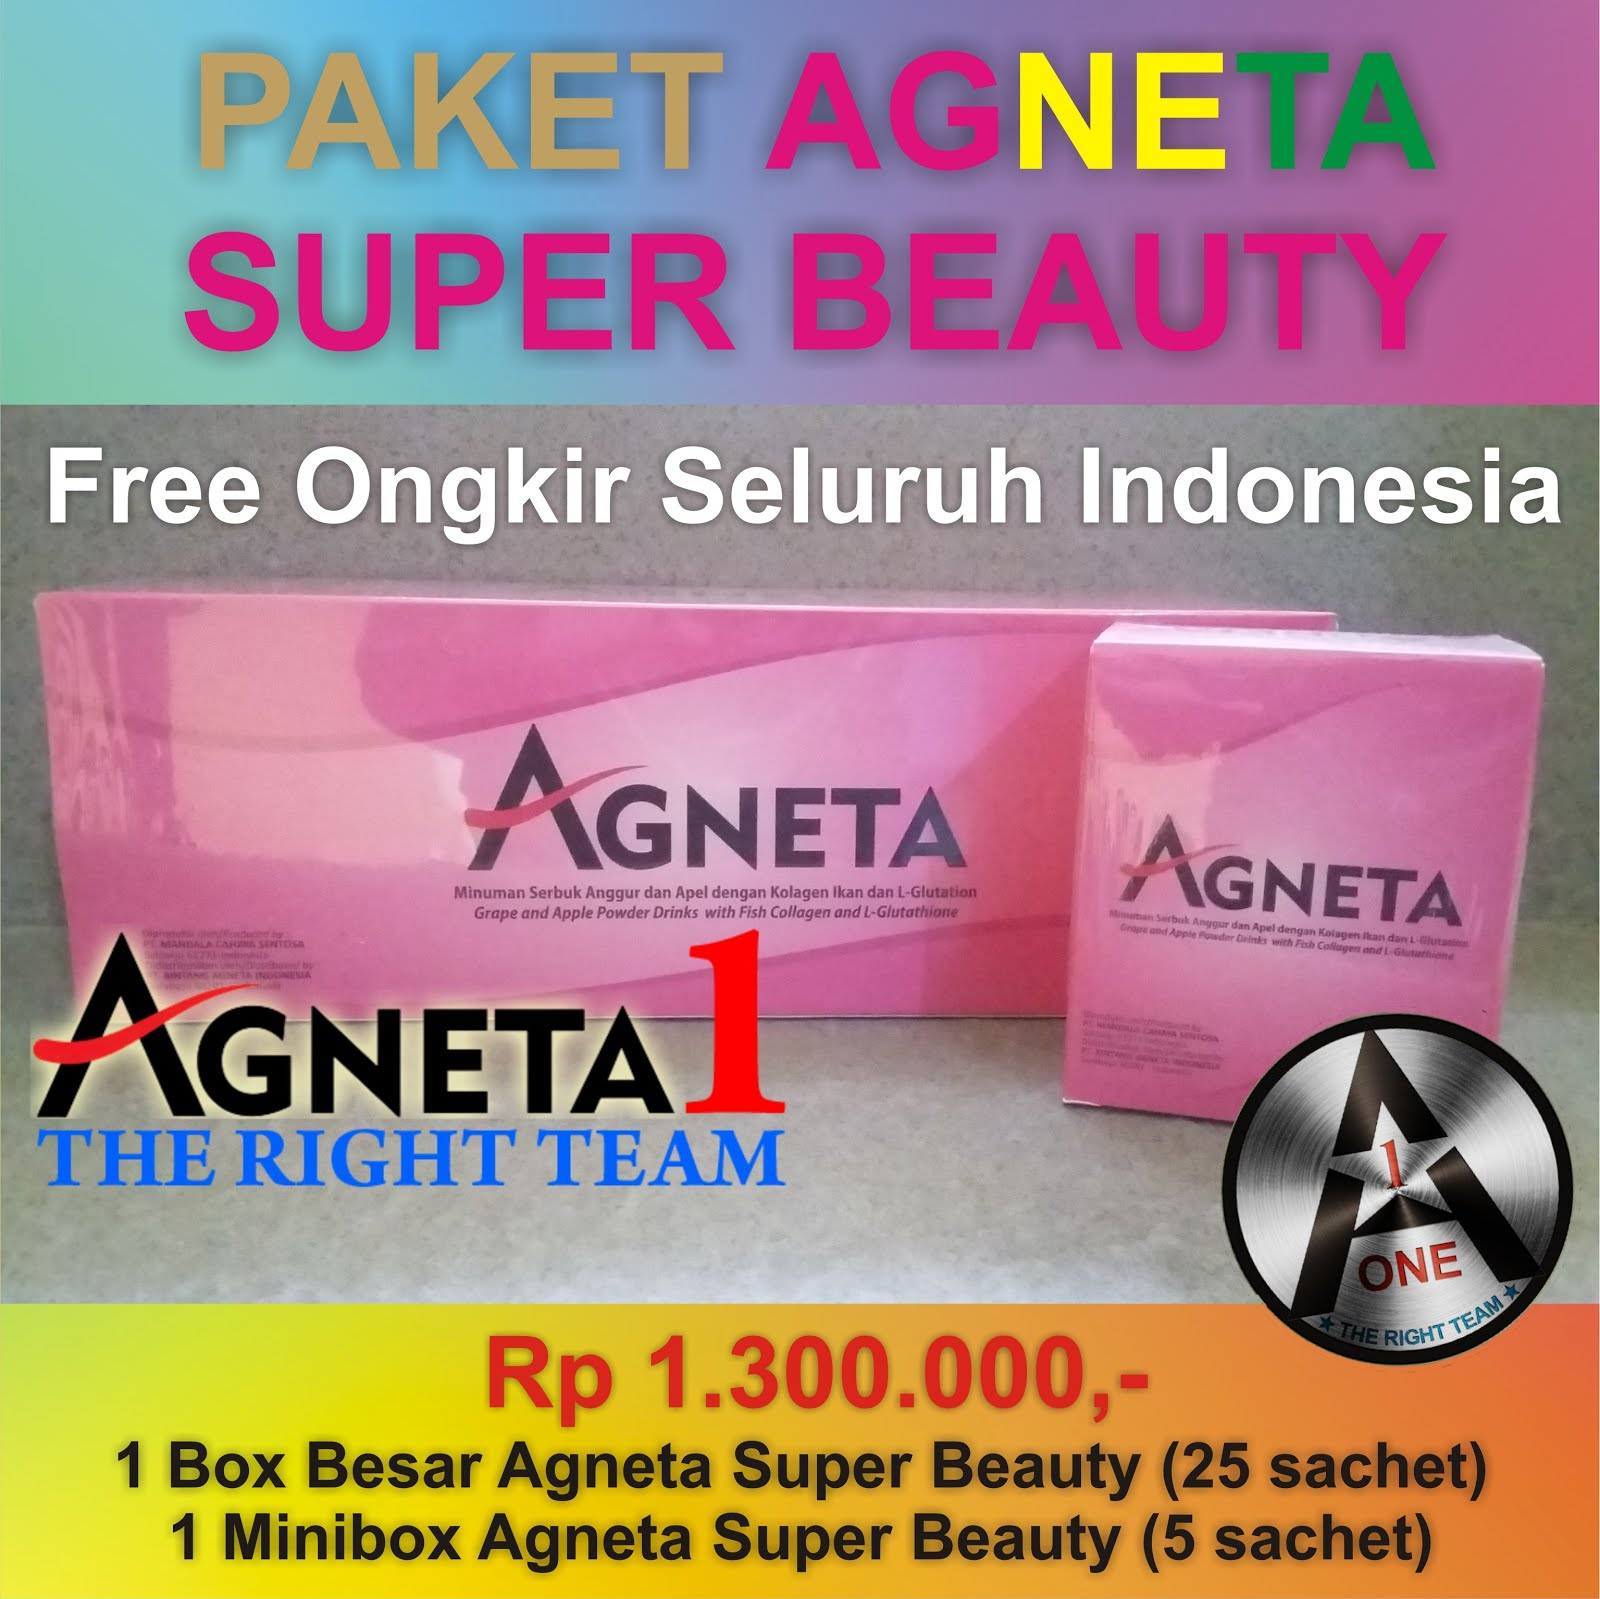 Paket Agneta Super Beauty (ASB)